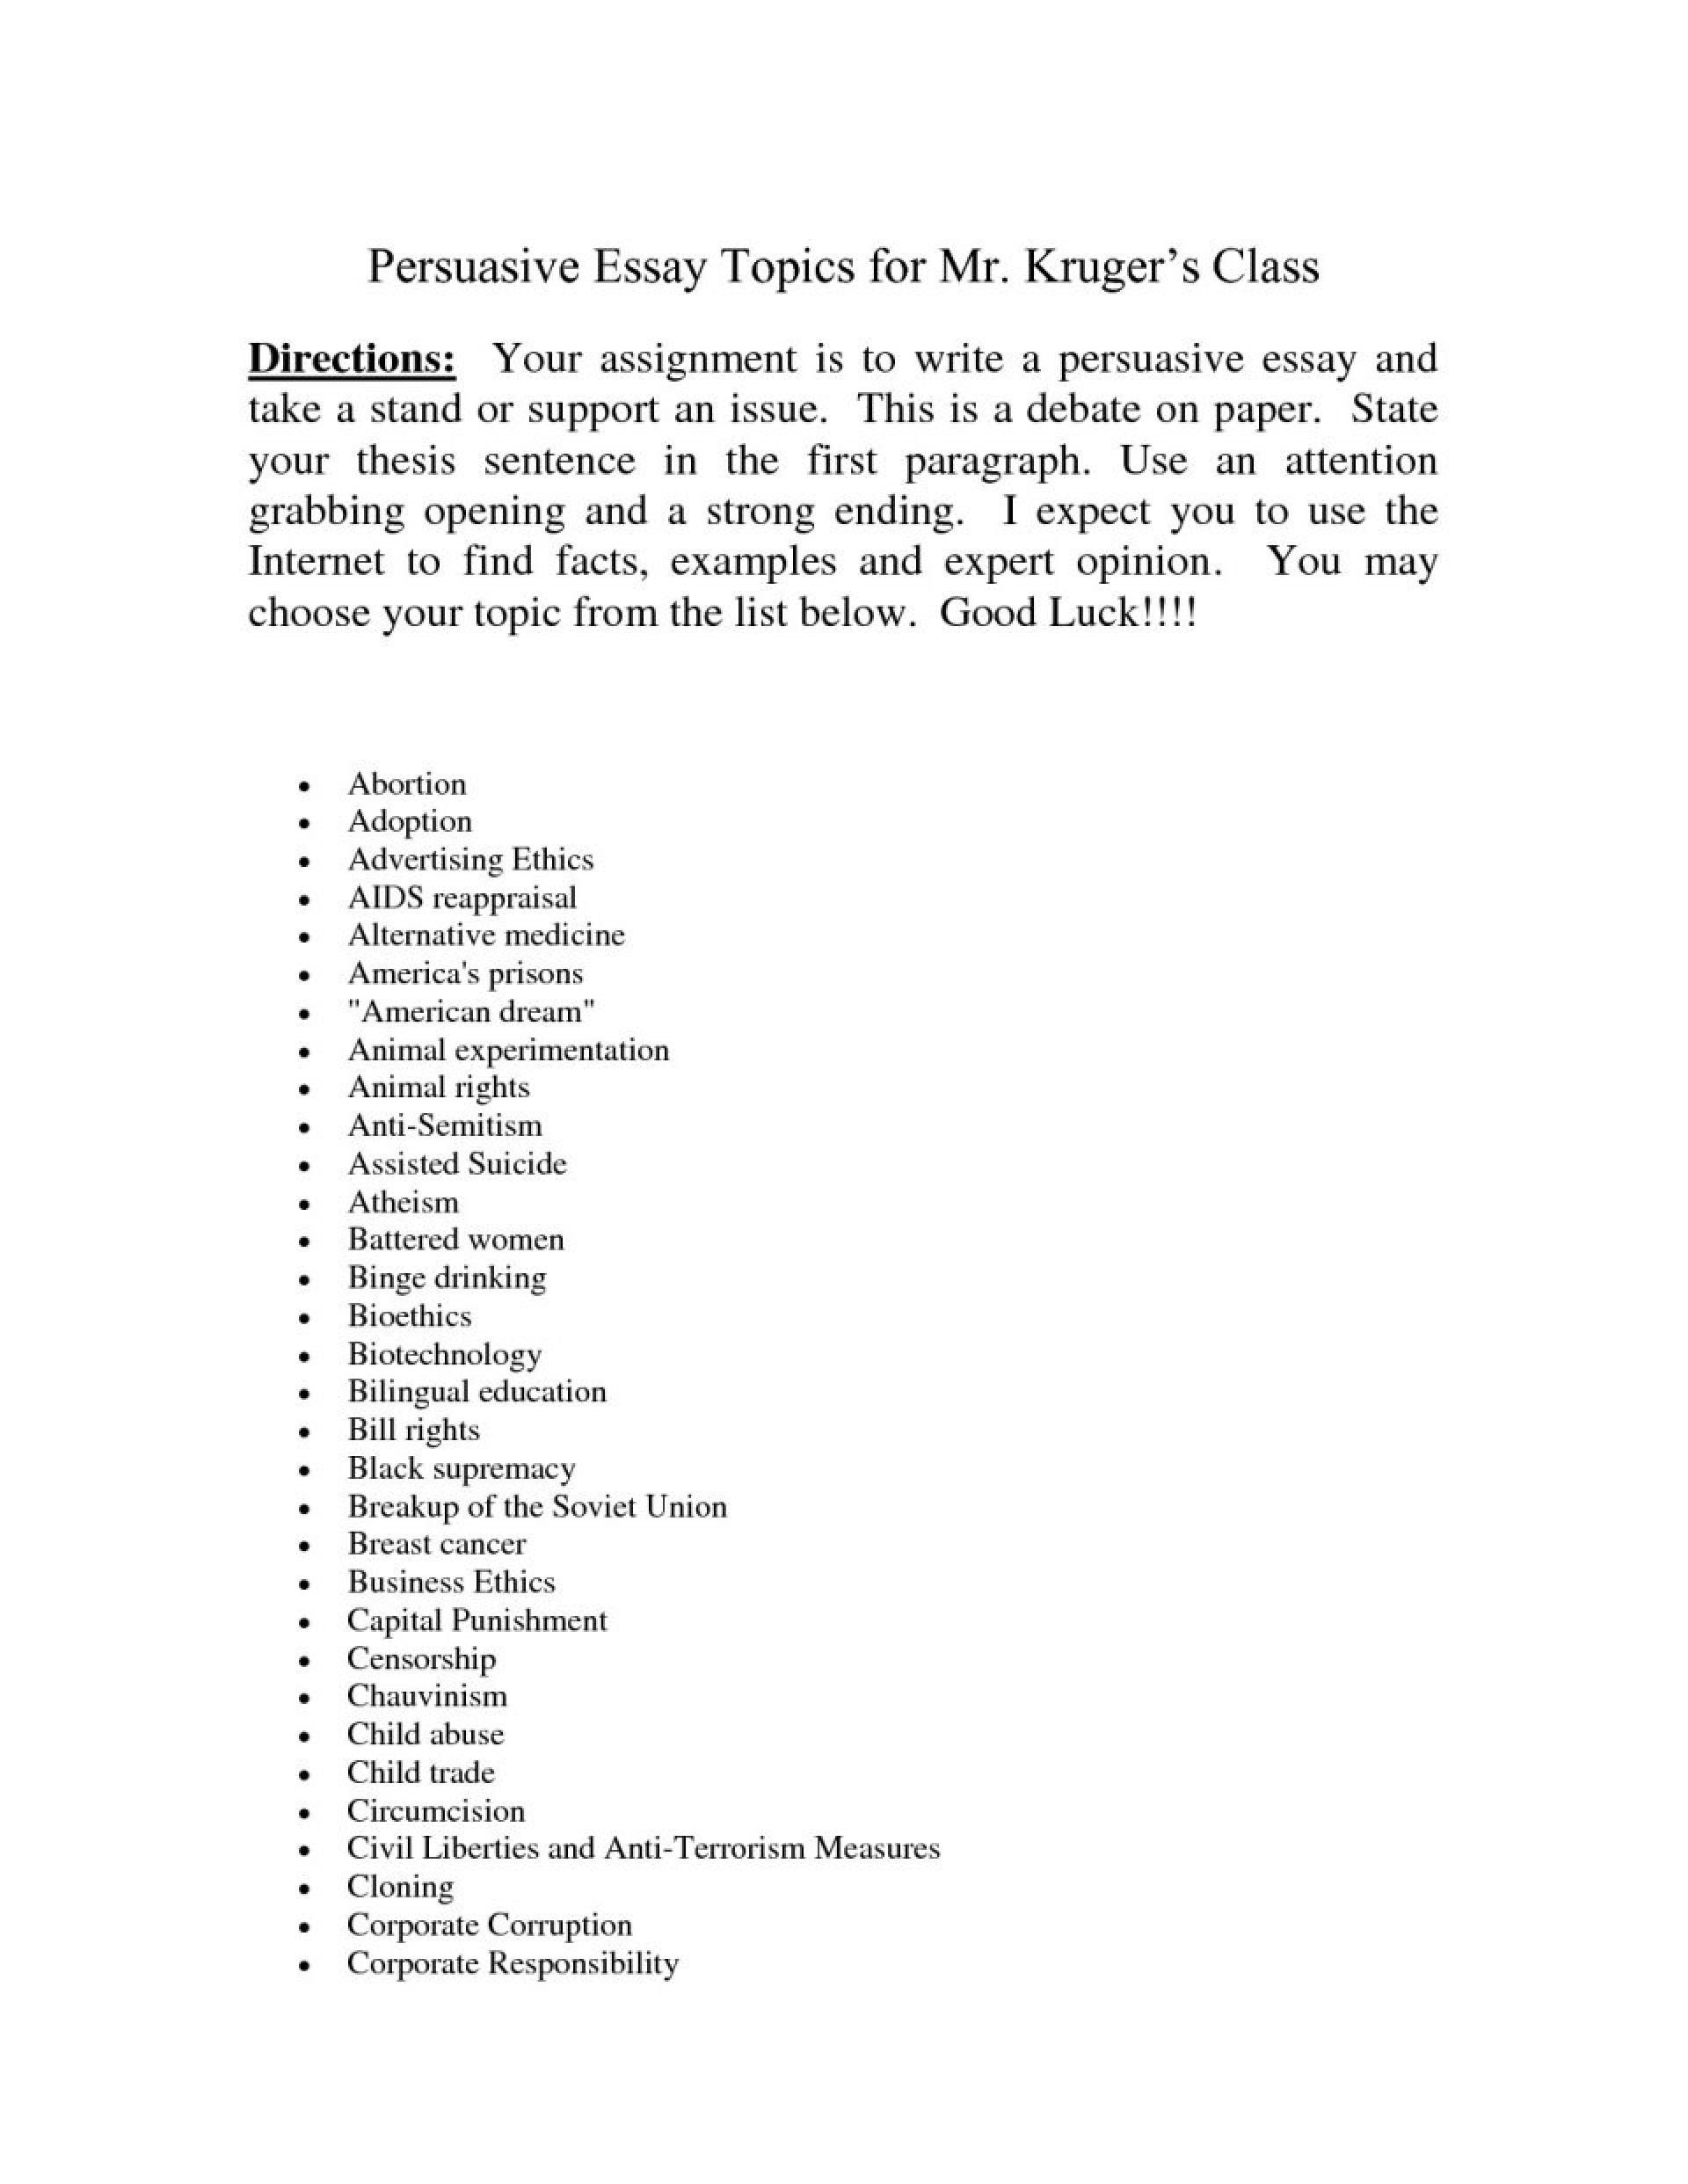 017 Topic For Essay Barca Fontanacountryinn Within Good Persuasive Narrative Topics To Write Abo Easy About Personal Descriptive Research Paper Informative Synthesis College 960x1242 Sensational Interesting A Ideas Reddit In The Philippines 1920